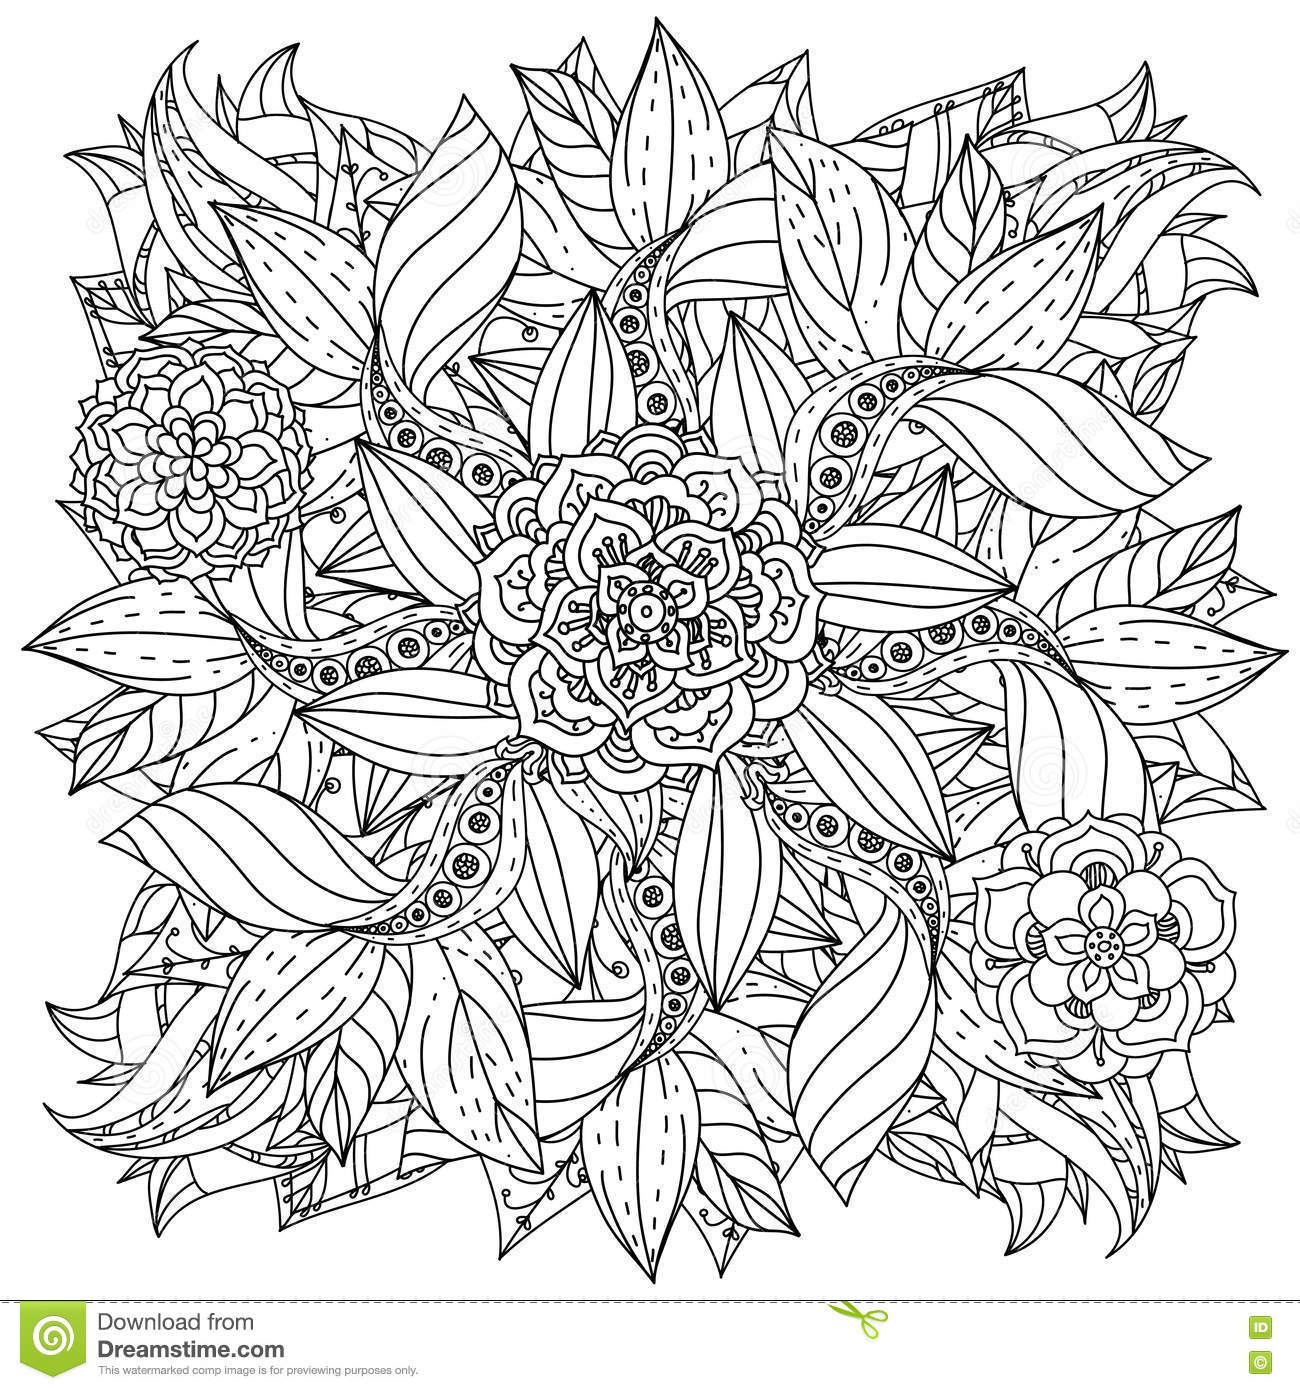 Zen Colouring Book Art Therapy Lacy Mucklow S Color Me